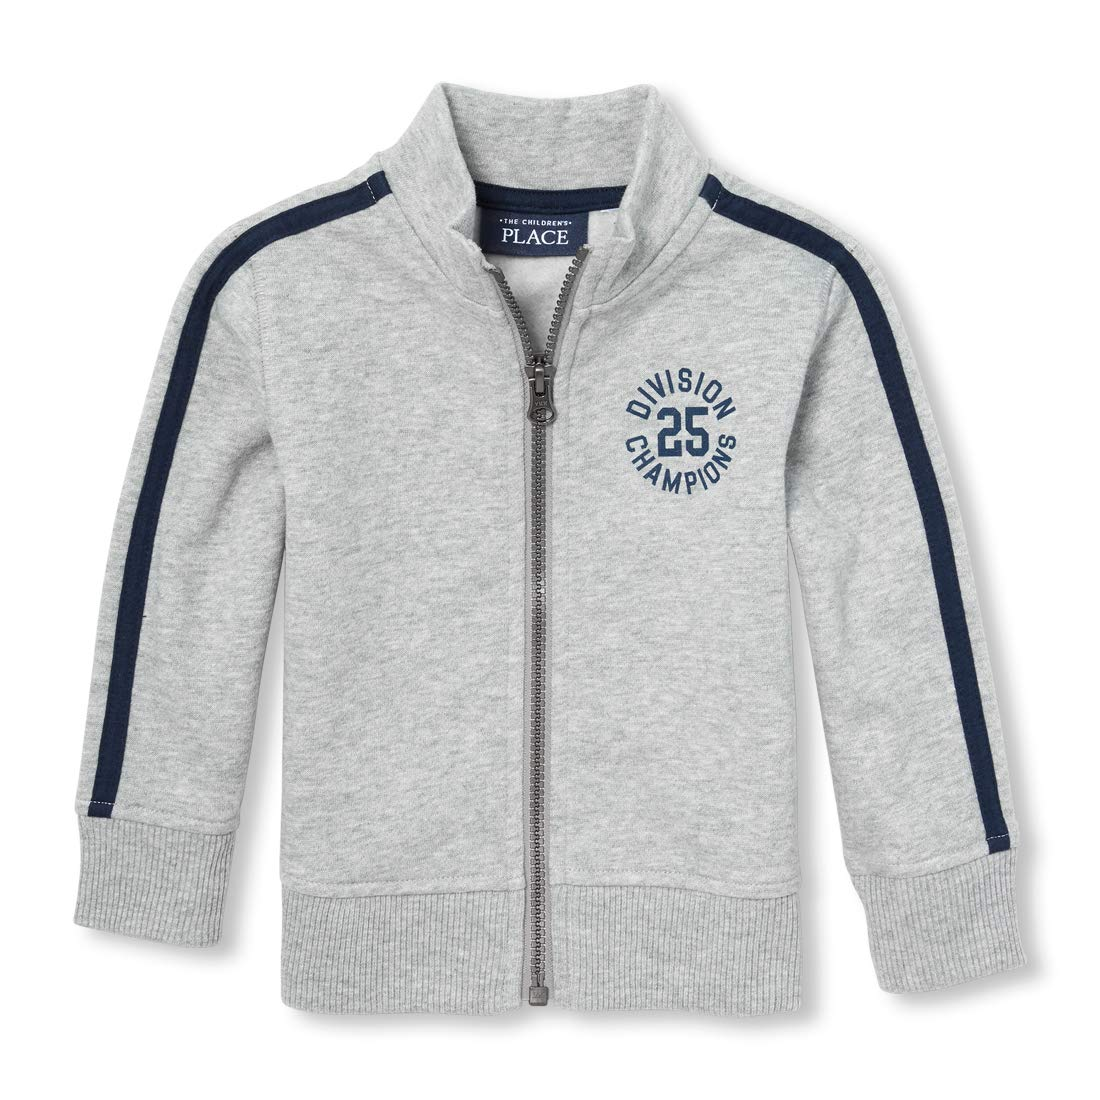 The Childrens Place Boys Track Jacket